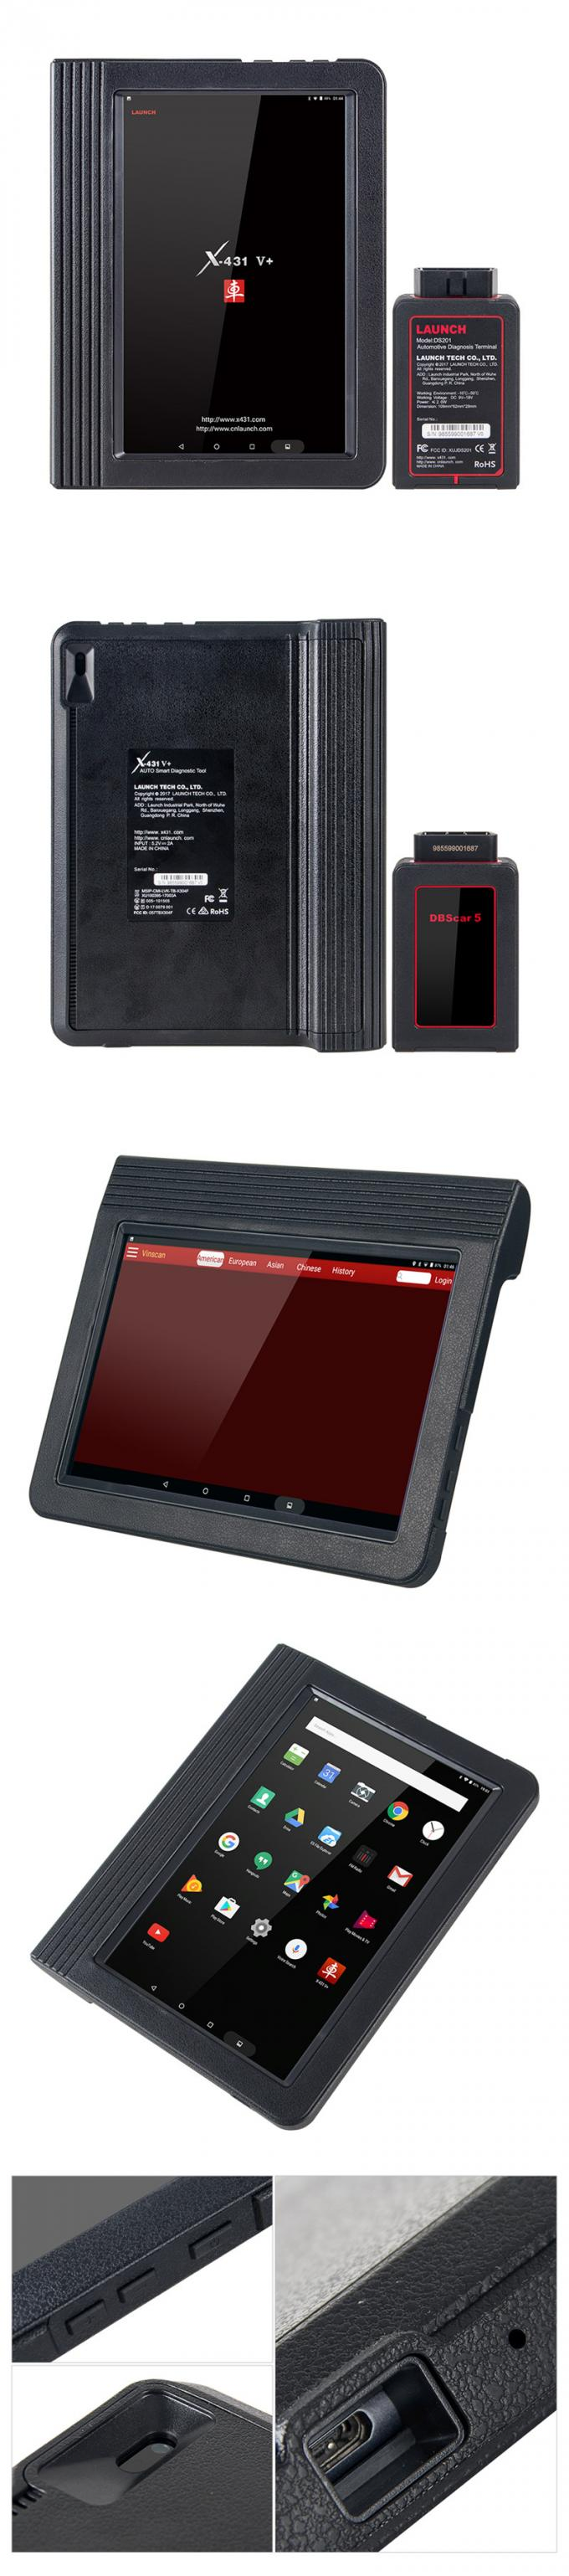 LAUNCH Official auto Scanner X431 V+ full system diagnostic tool X-431 V+ Scanner Support Wifi Bluetooth with 2 year fre